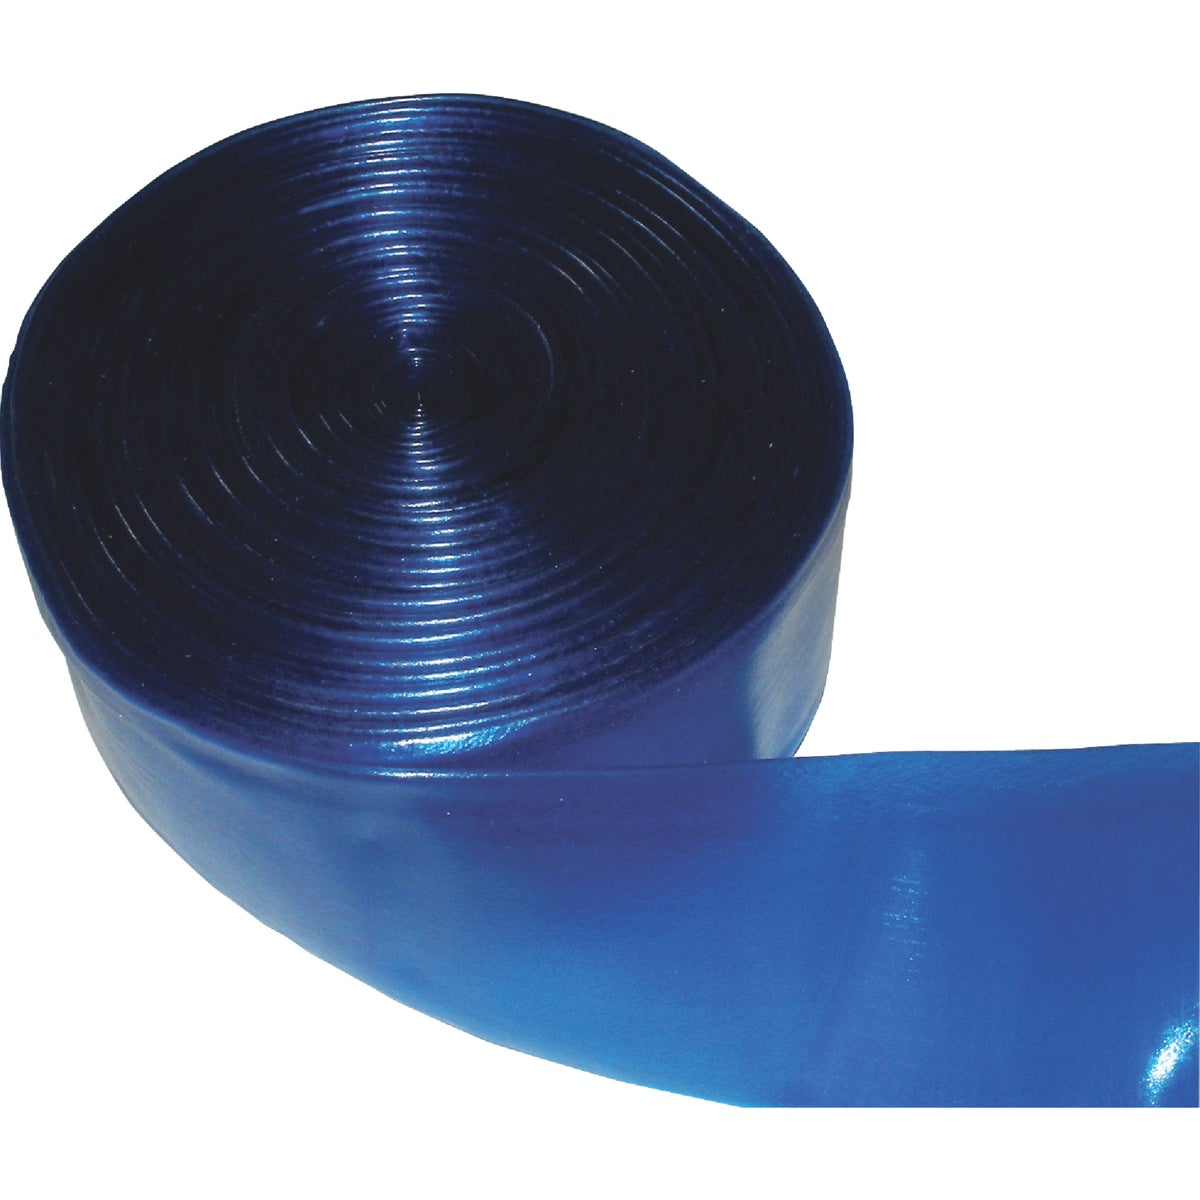 "1-1/2""X50' BACKWASH HOSE - 60-640-050 by Jed Pool"